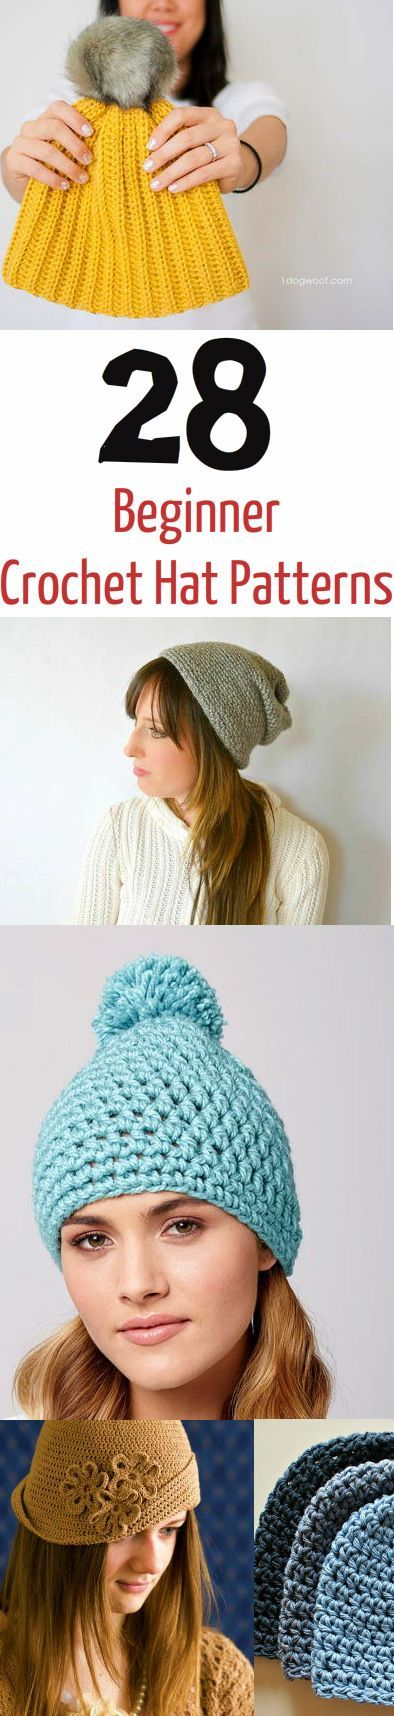 Crochet hat patterns that the whole family will love! From beanies and slouchy…